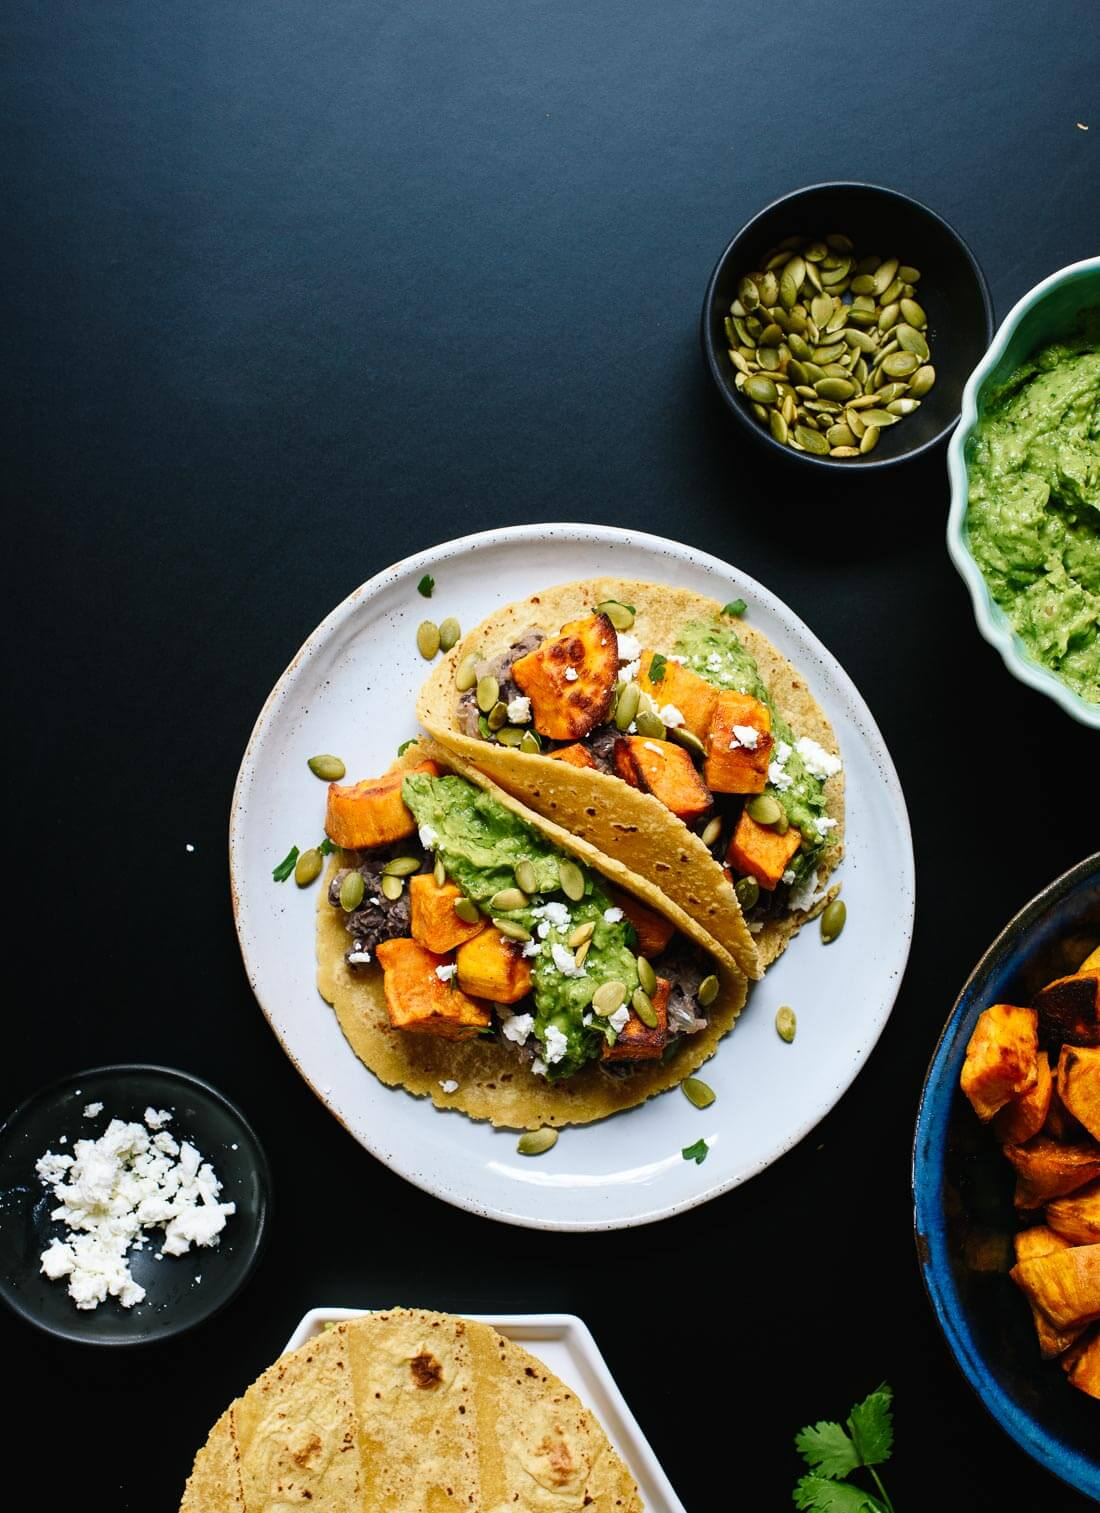 Delicious black bean and sweet potato tacos with avocado sauce and feta on top! Everyone loves these vegetarian tacos. cookieandkate.com